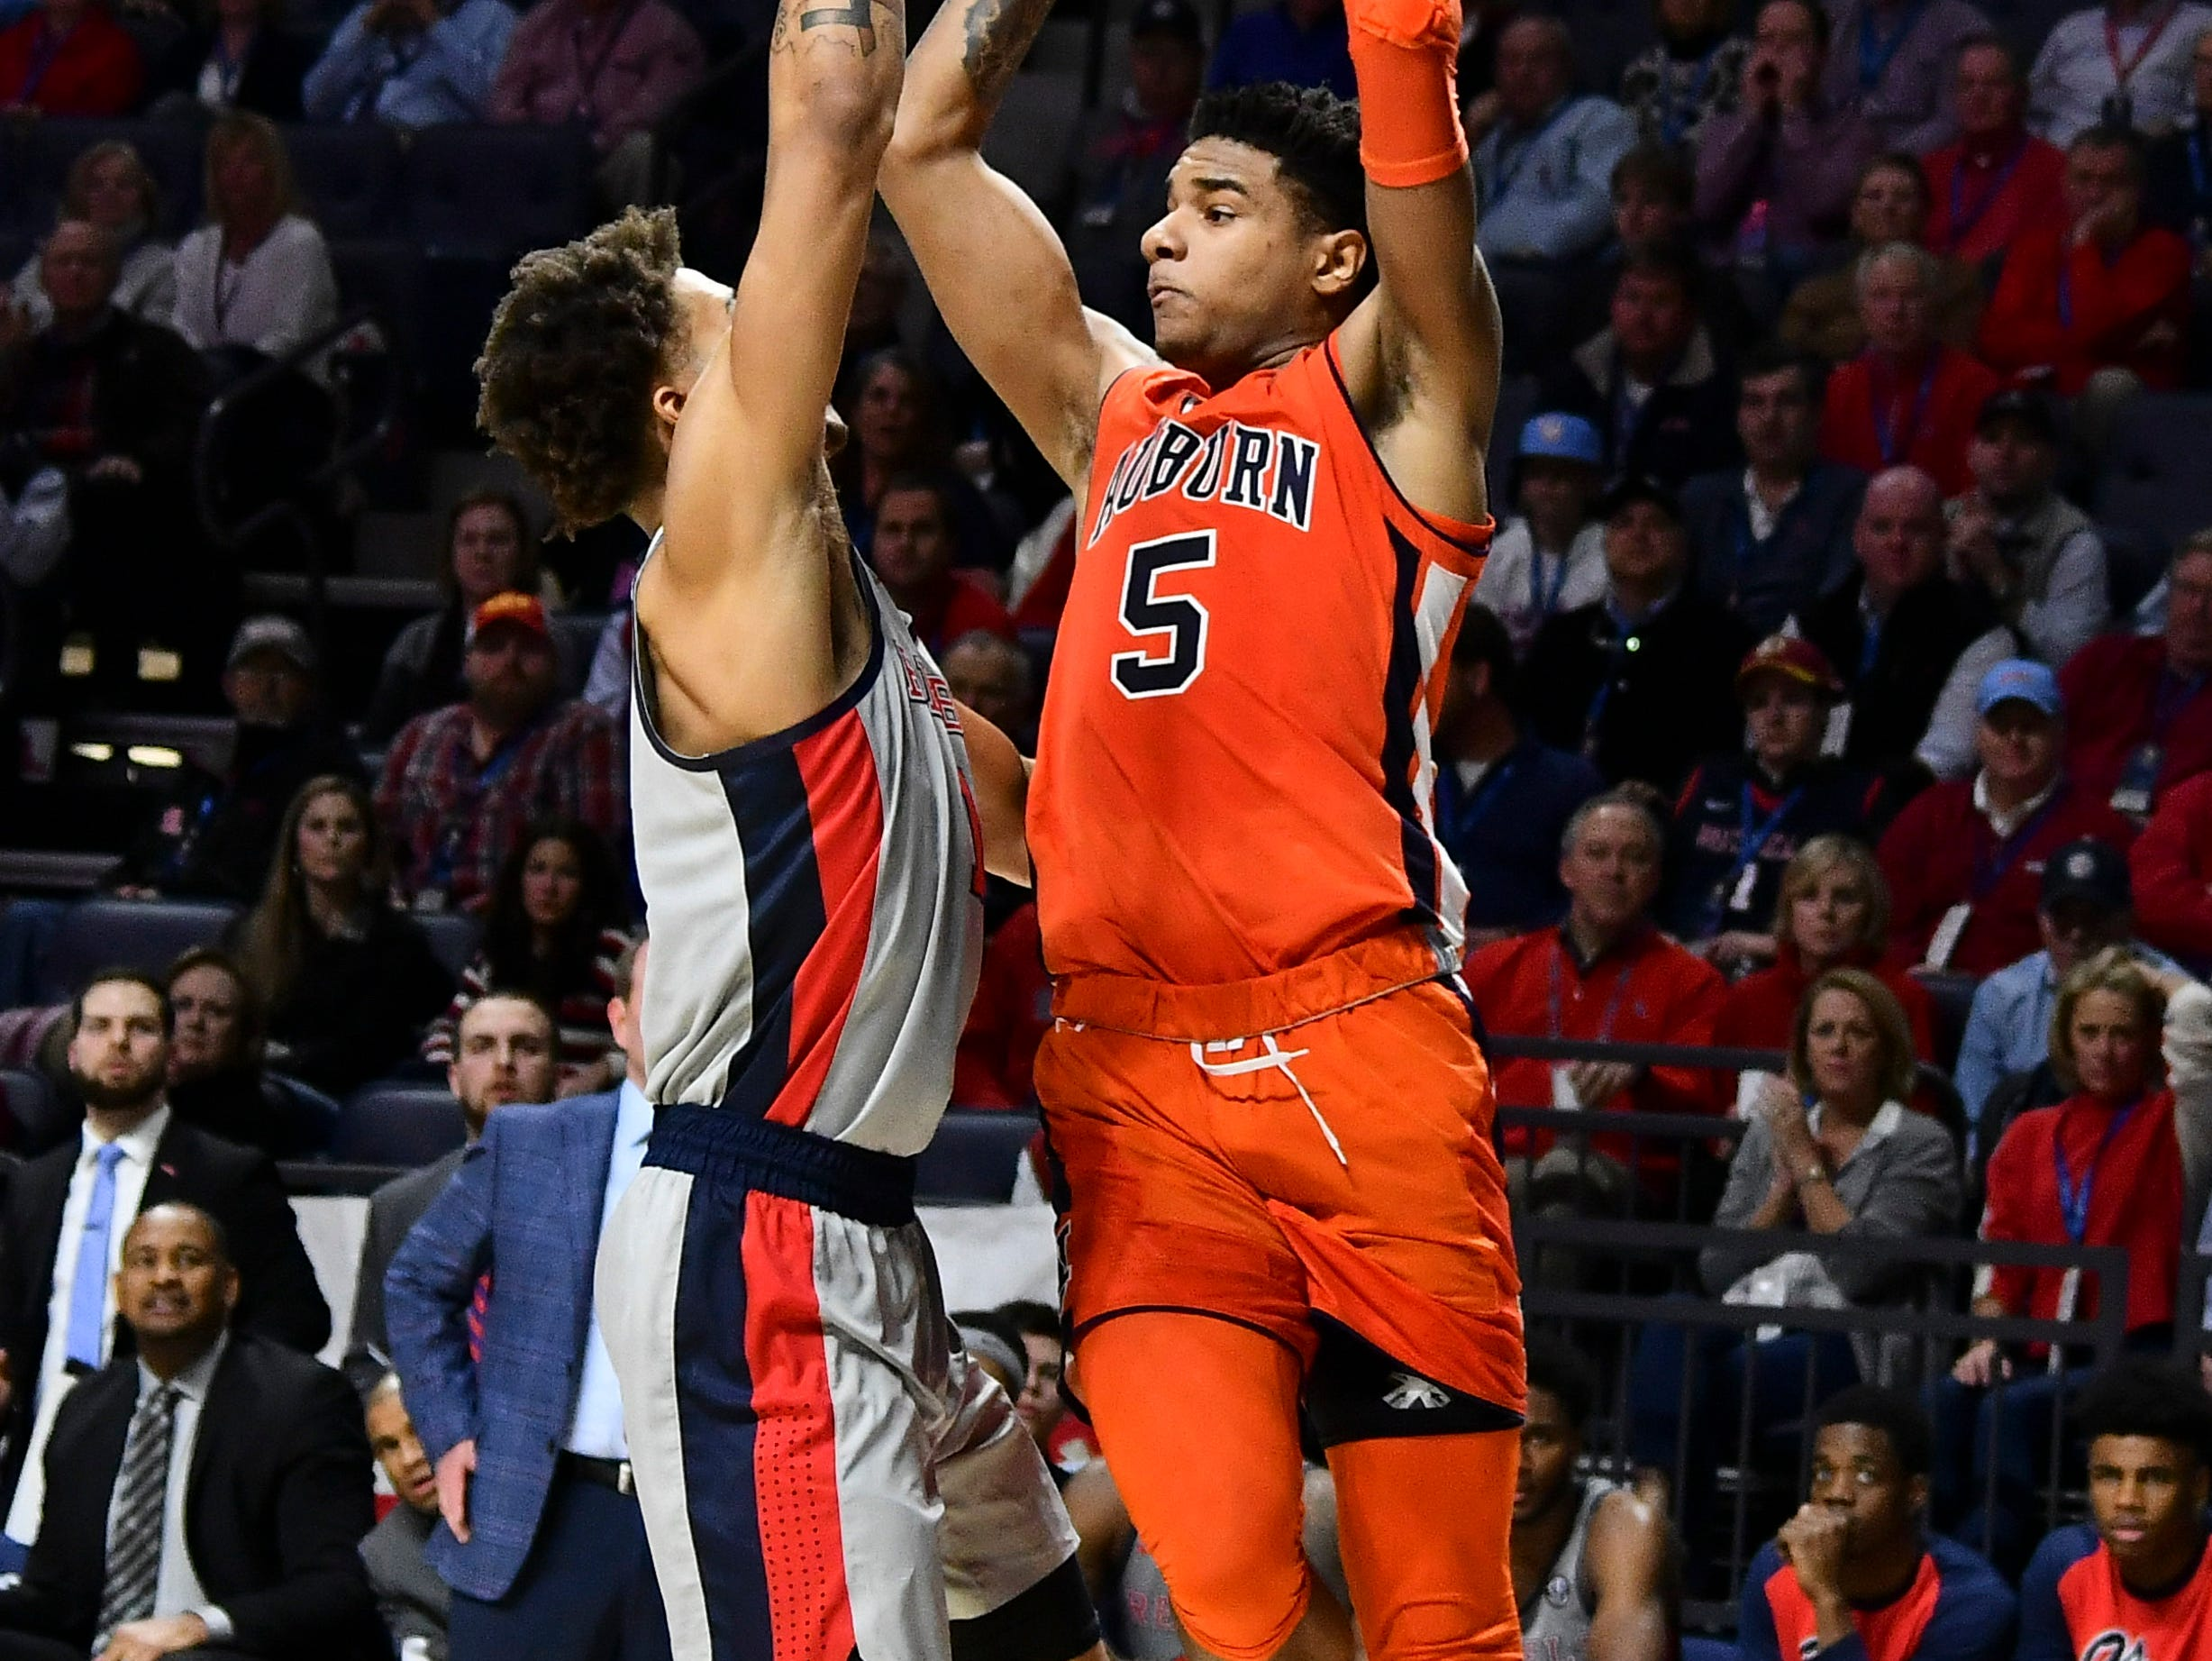 Jan 9, 2019; Oxford, MS, USA; Auburn Tigers forward Chuma Okeke (5) goes up for a pass defended by Mississippi Rebels forward KJ Buffen (14) during the first quater at The Pavilion at Ole Miss. Mandatory Credit: Matt Bush-USA TODAY Sports